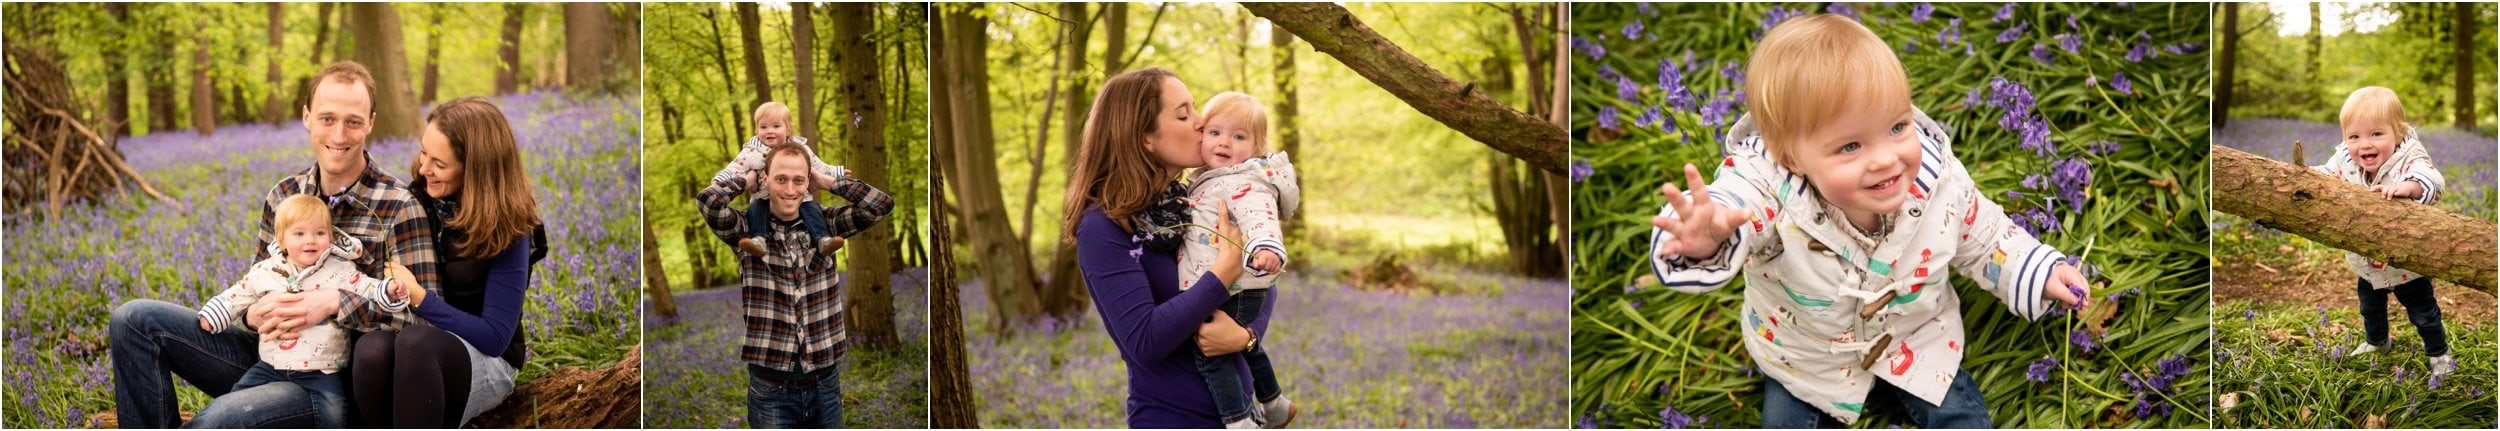 spring St Albans family photographer